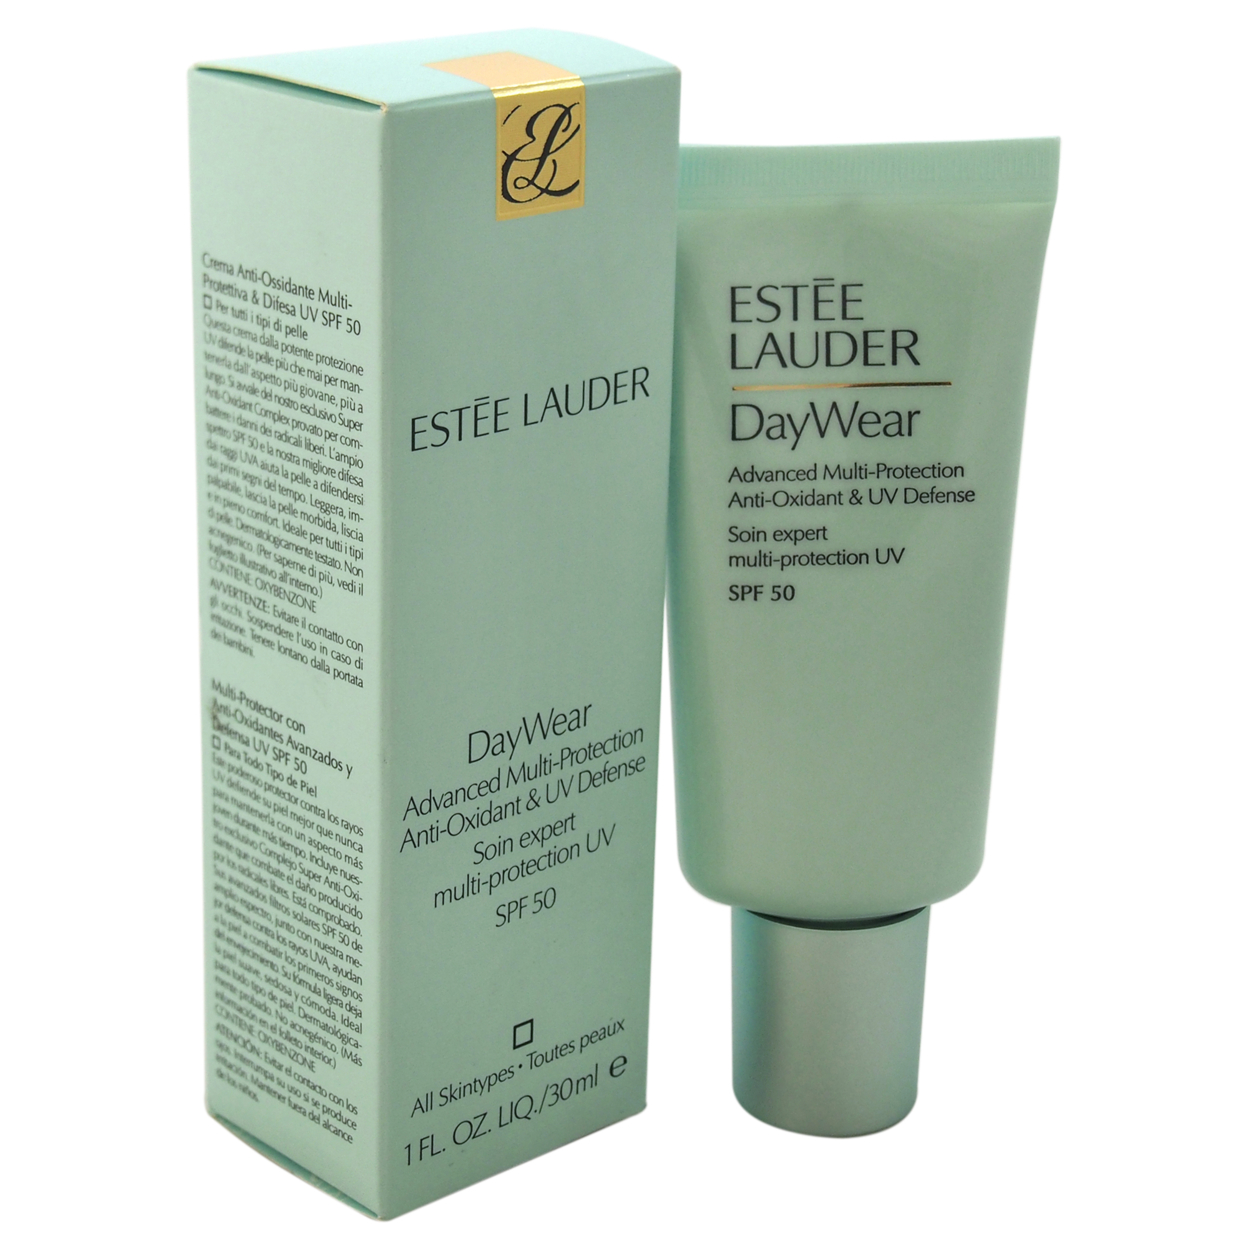 DayWear Advanced Multi-Protection Anti-Oxidant & UV Defense SPF50-All Skin Types by Estee Lauder for Unisex - 1 oz Lotion крем gigi advanced peeling cream for all skin types